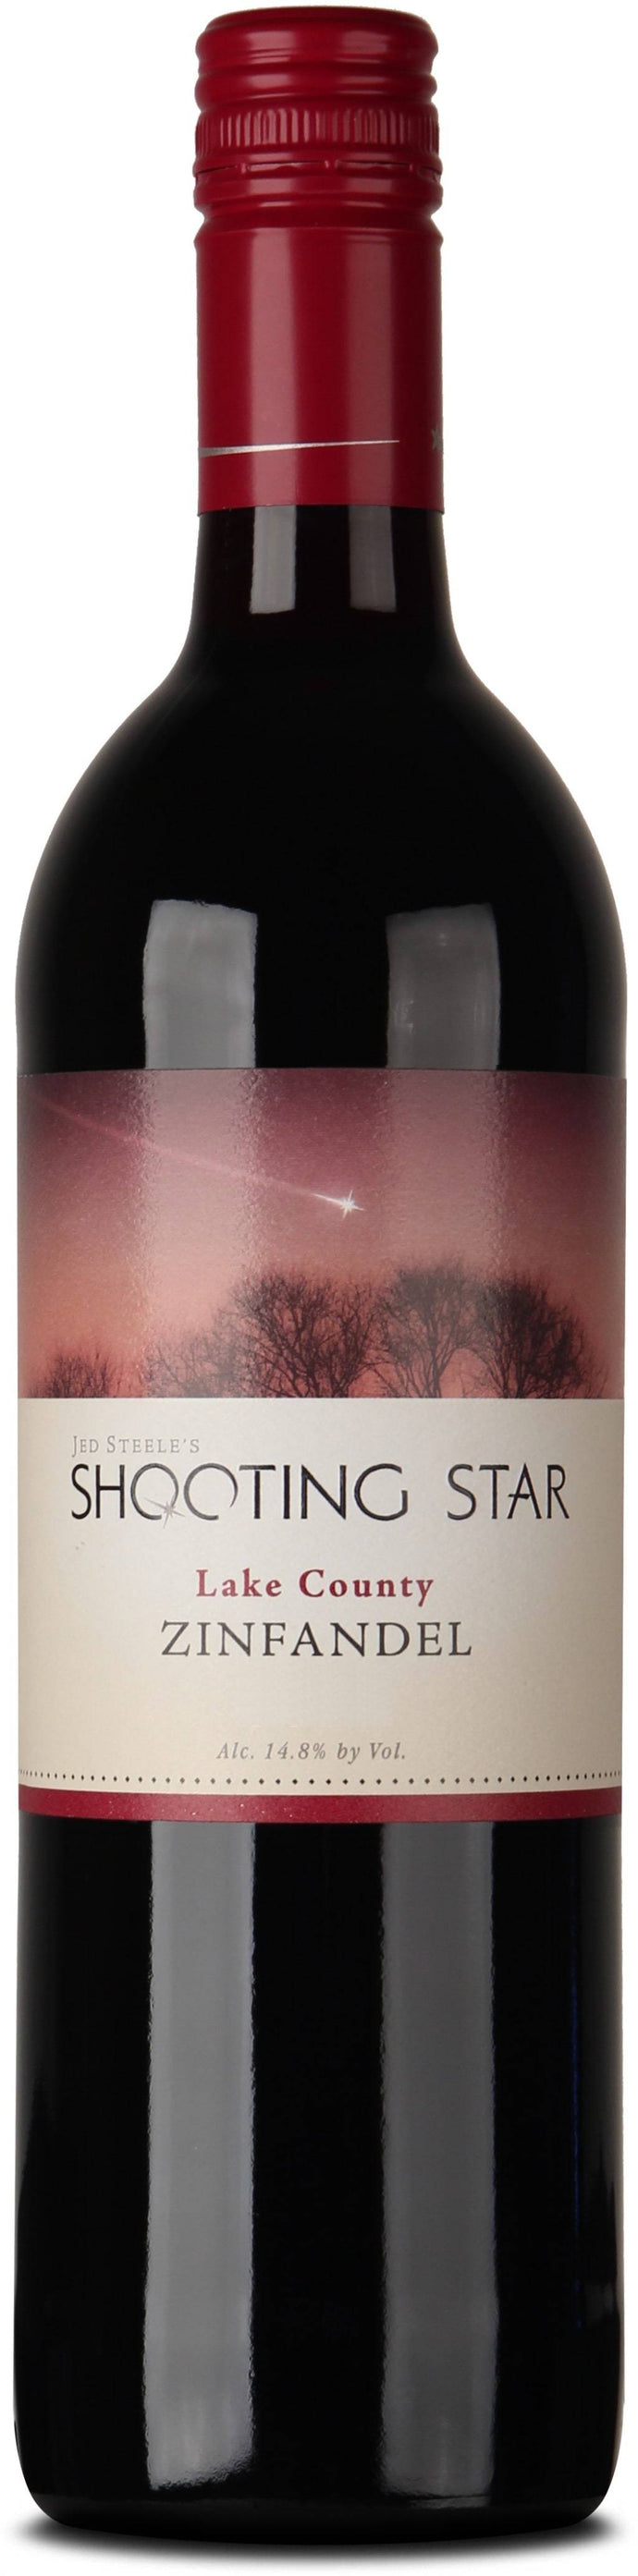 Jed Steele's Shooting Star Zinfandel 2017 750mL